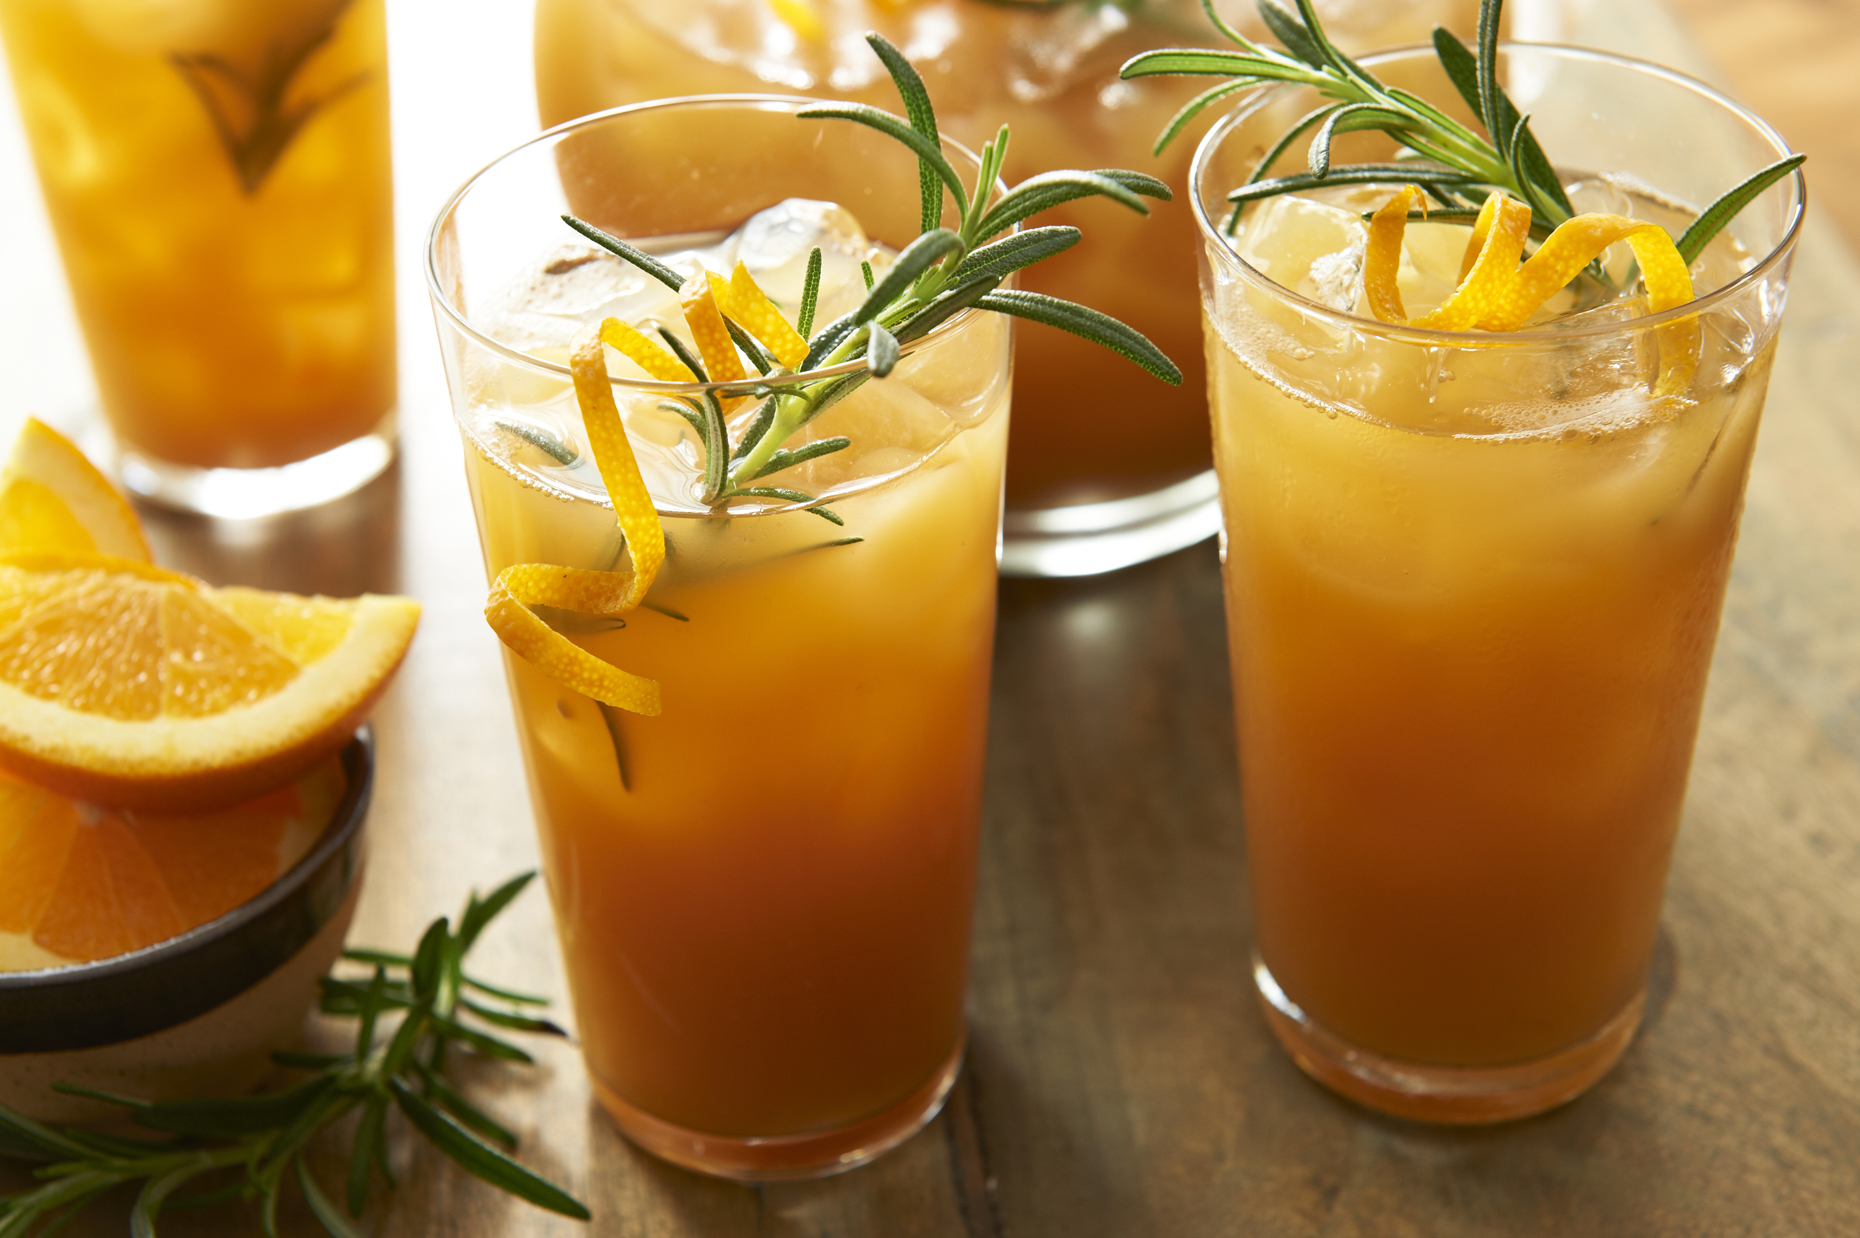 38-Rosemary_Orangeade_Tea_Tighter_0166 1